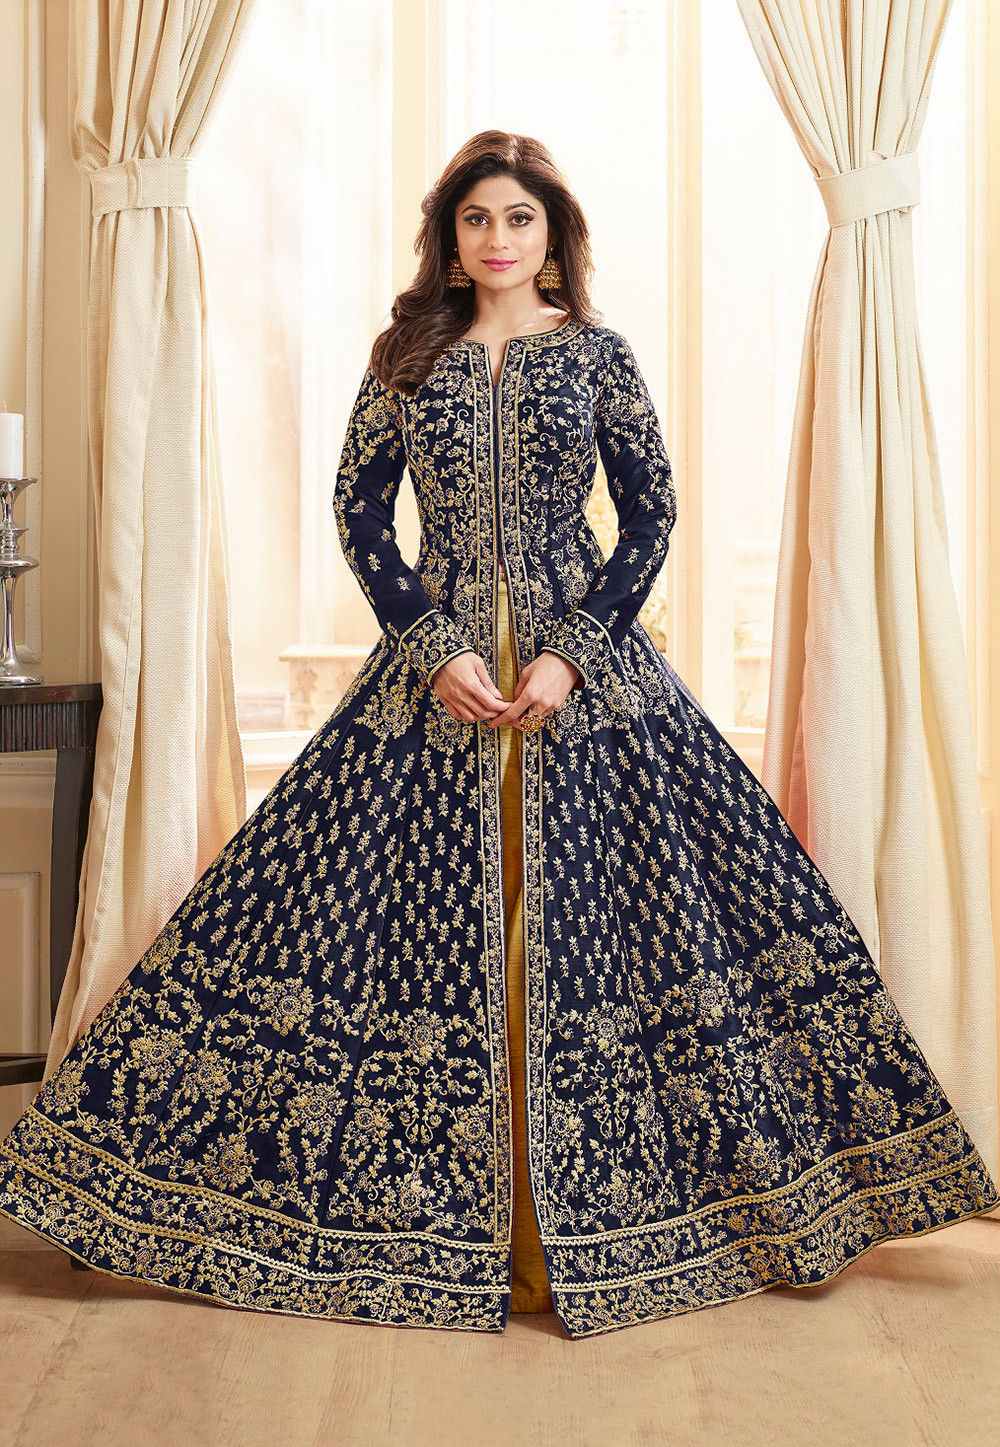 2a6d17e37cb92 ... Embroidered Art Silk Lehenga in Navy Blue. Zoom